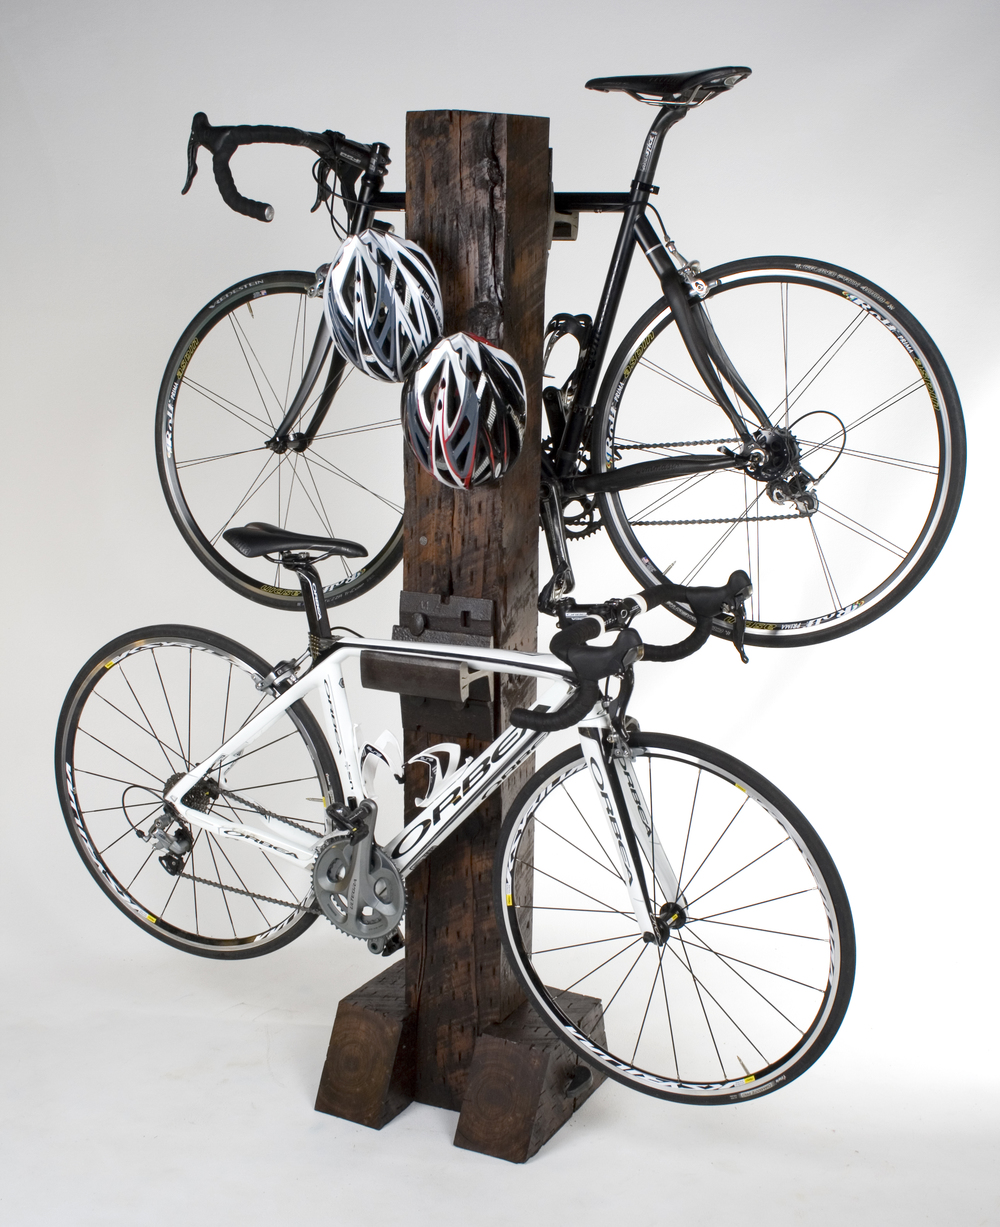 bike-rack-two-bike.jpg